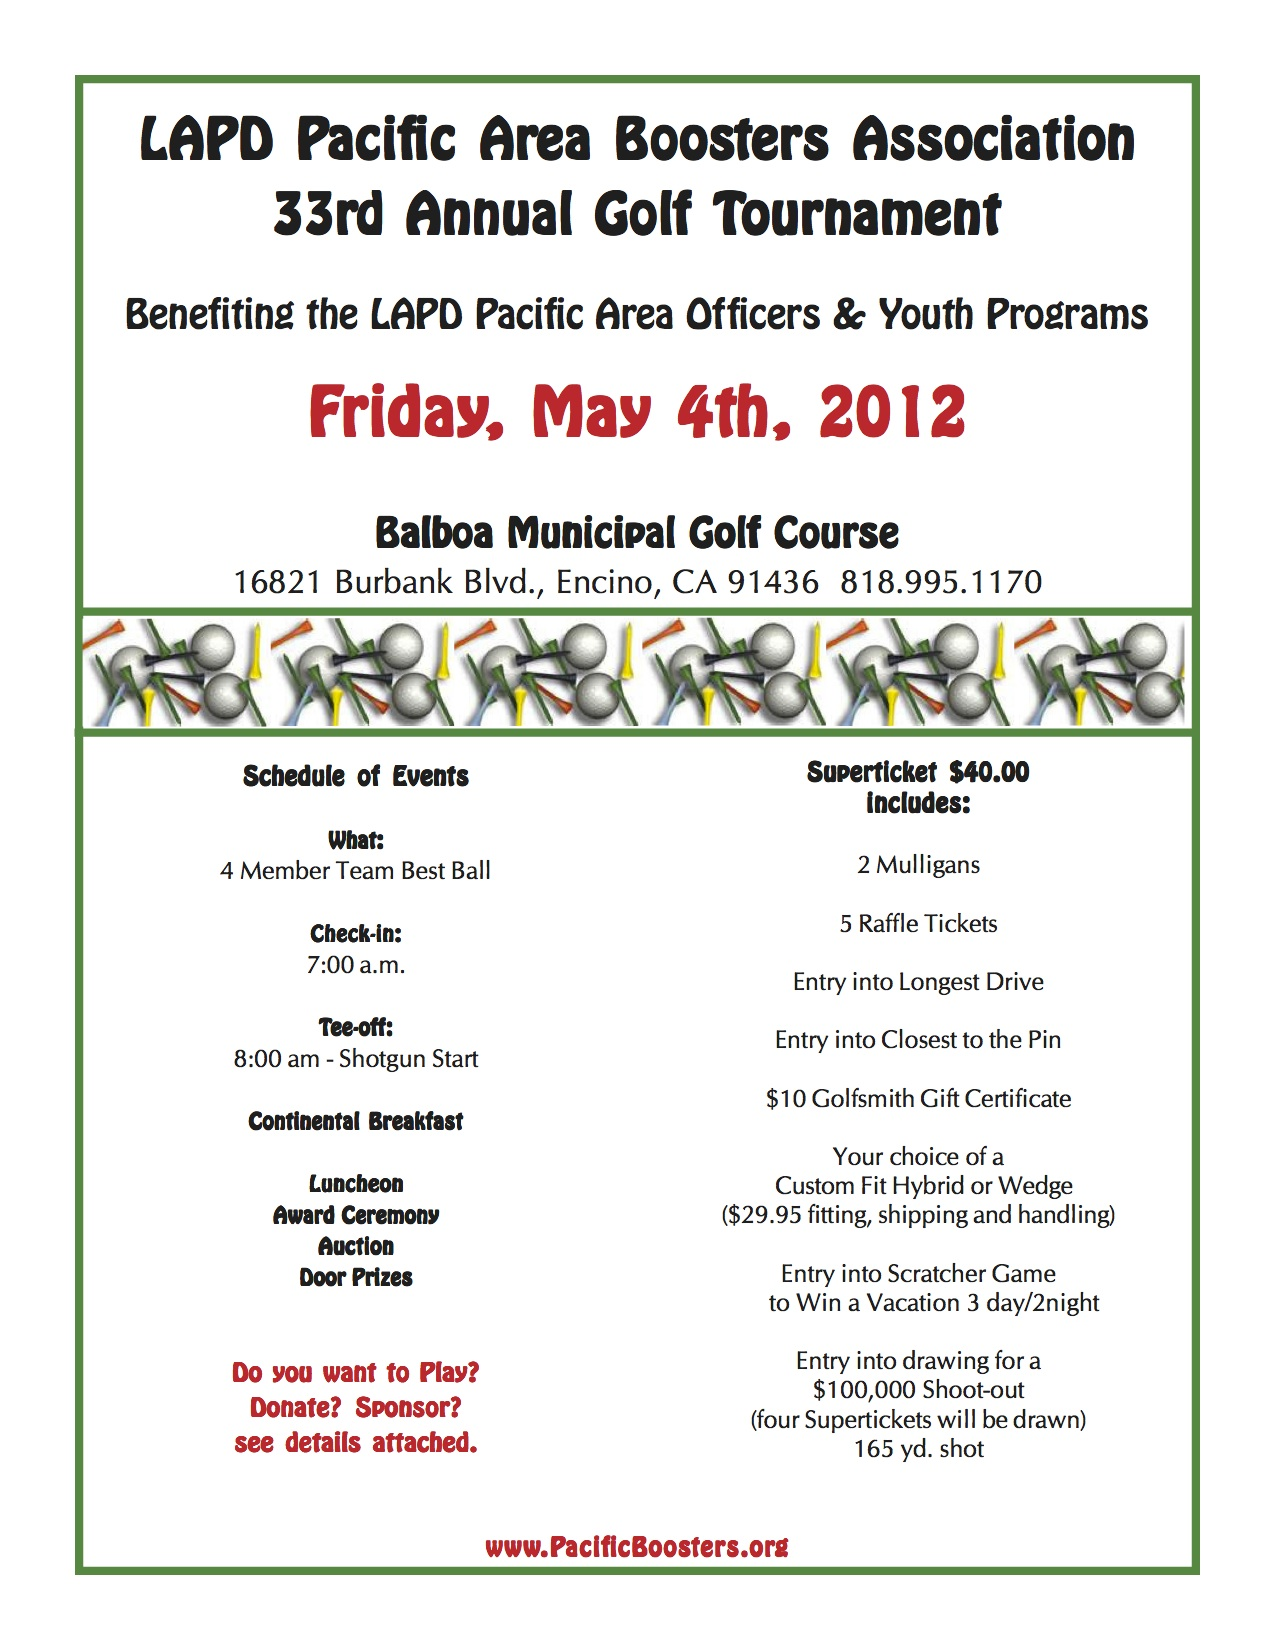 LAPD Golf Tournament needs Sponsors/Players